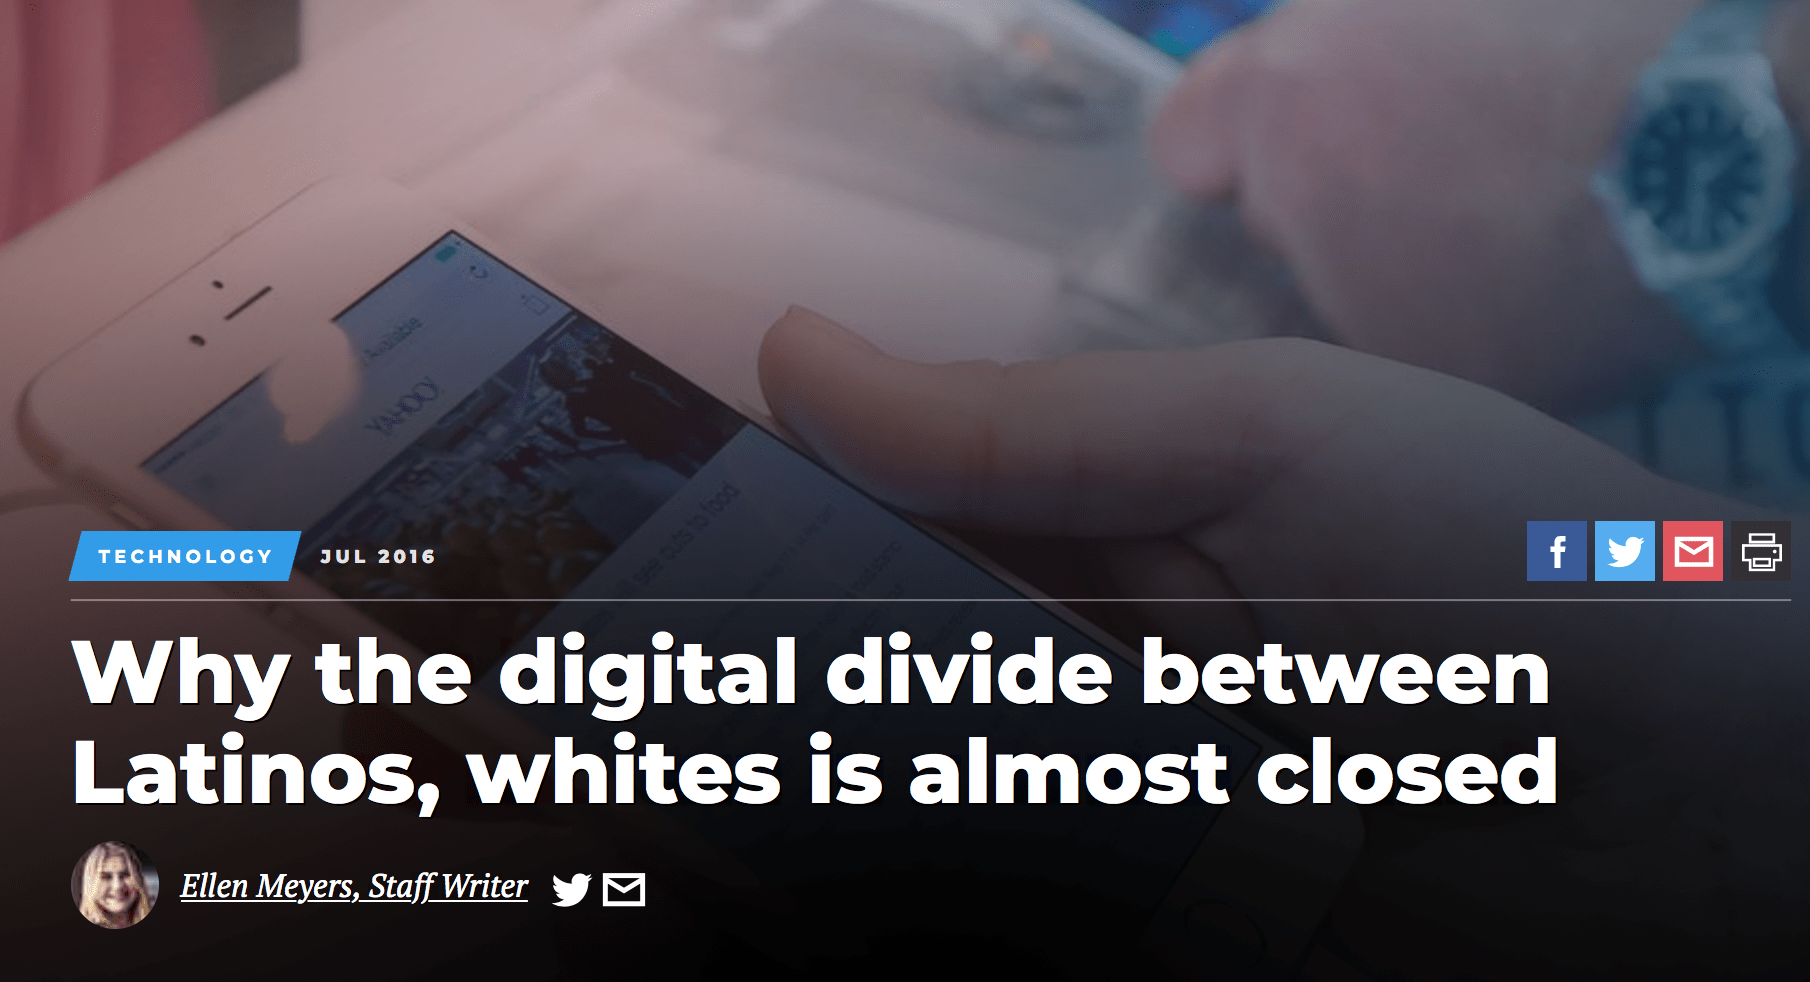 Why the digital divide between Latinos, whites is almost closed